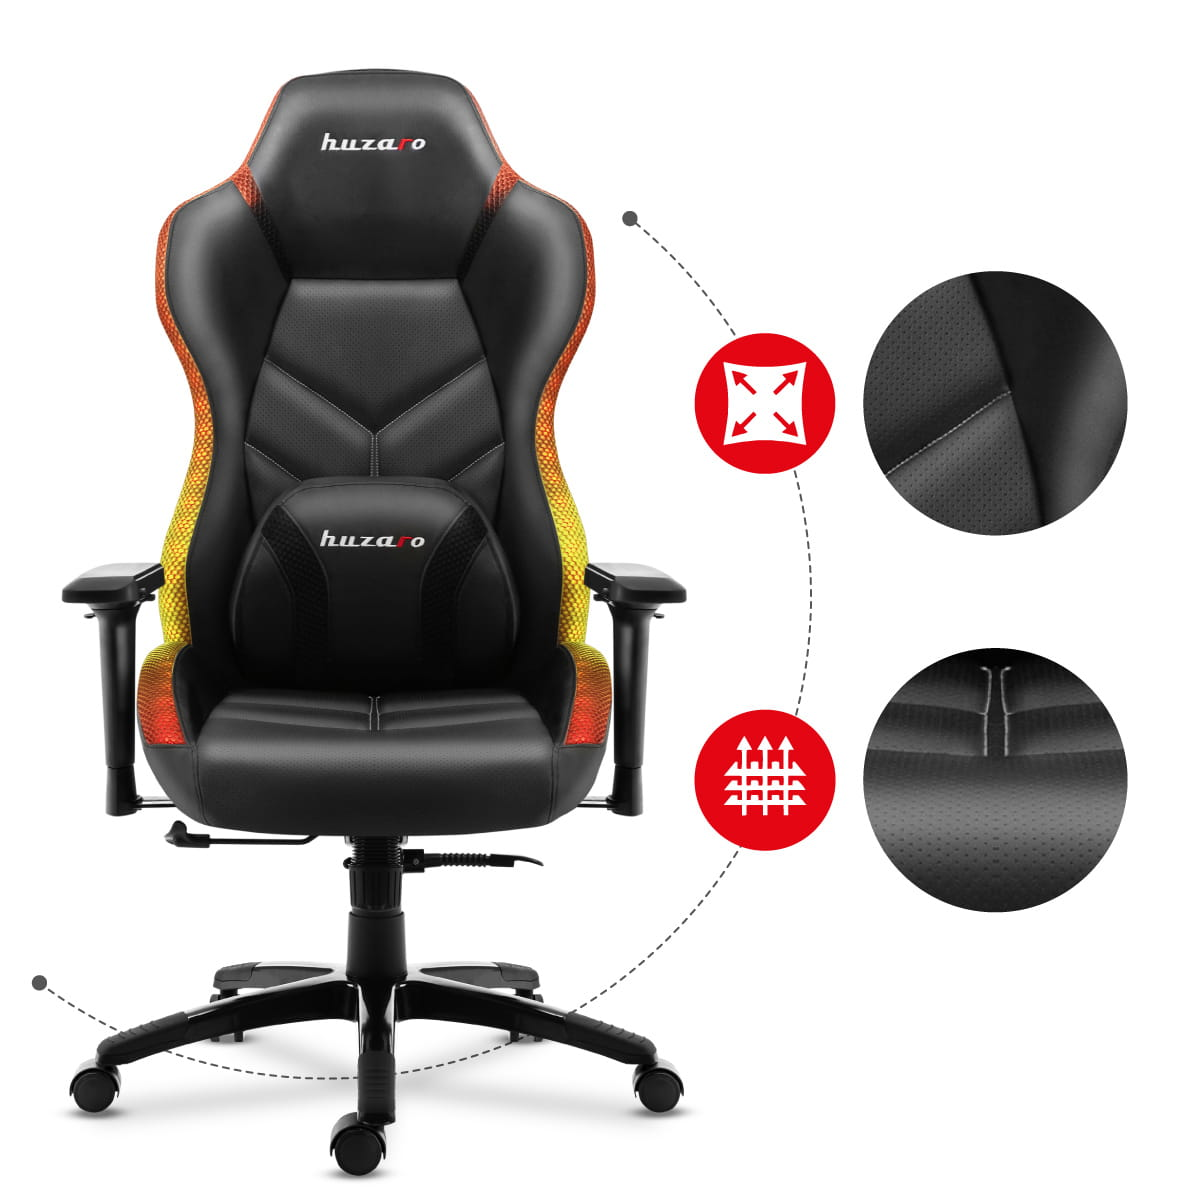 Gaming chair force 6.6 huzaro5